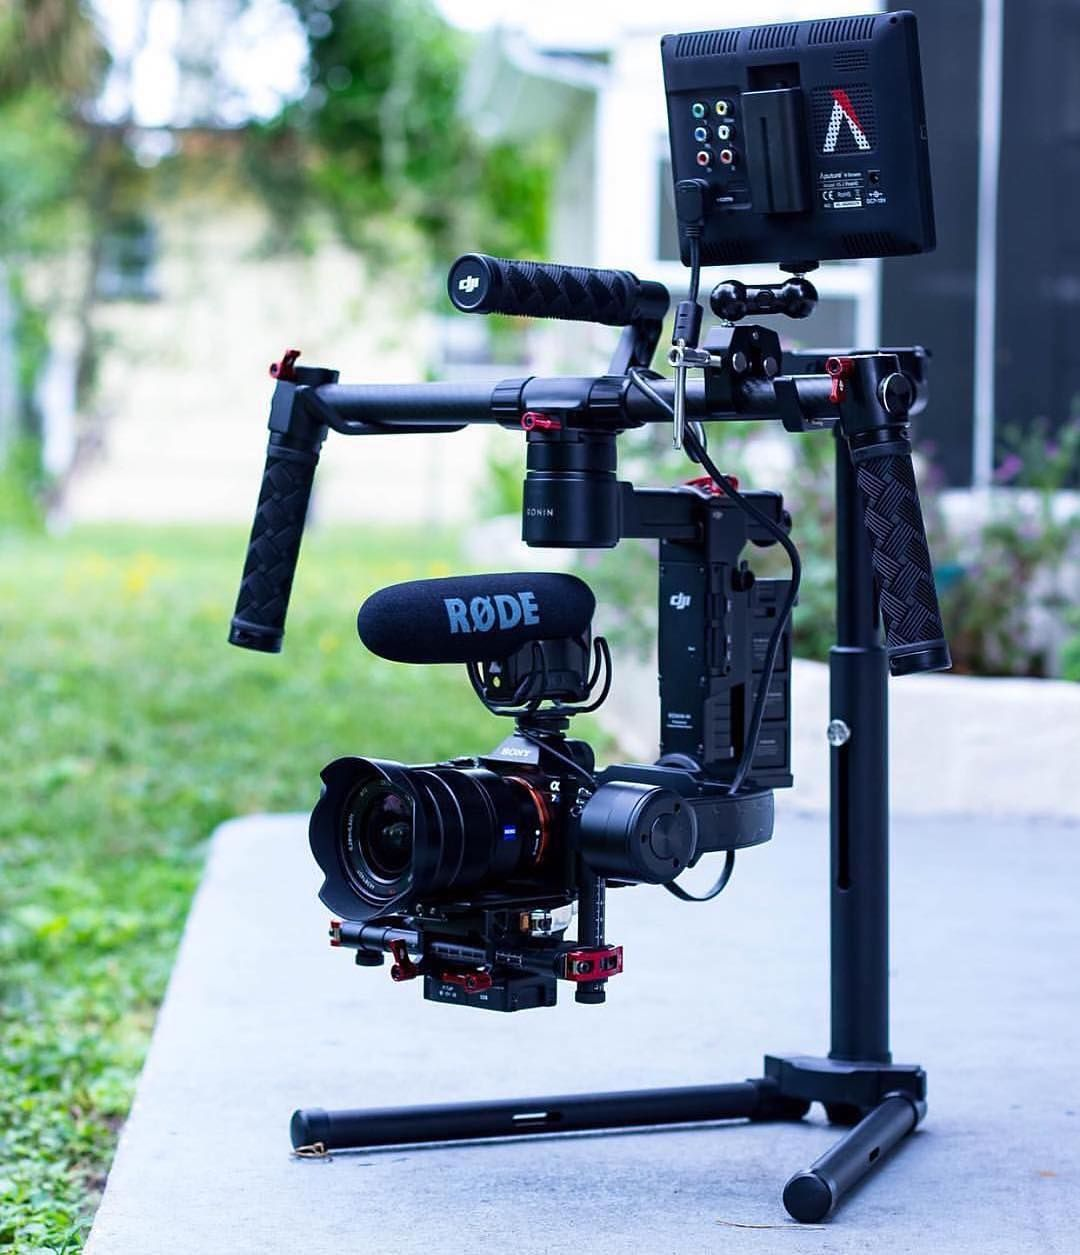 What Rigs Do You Use When Are Shooting Videos Sony A7s With L Plate Bracket Shape Kamera A7 A7r Mark Ii Mark2 The Aputurephoto Vs2 Rodemic On A Djiglobal Ronin By Mclaughlz Photographicblog Cinematography Videography